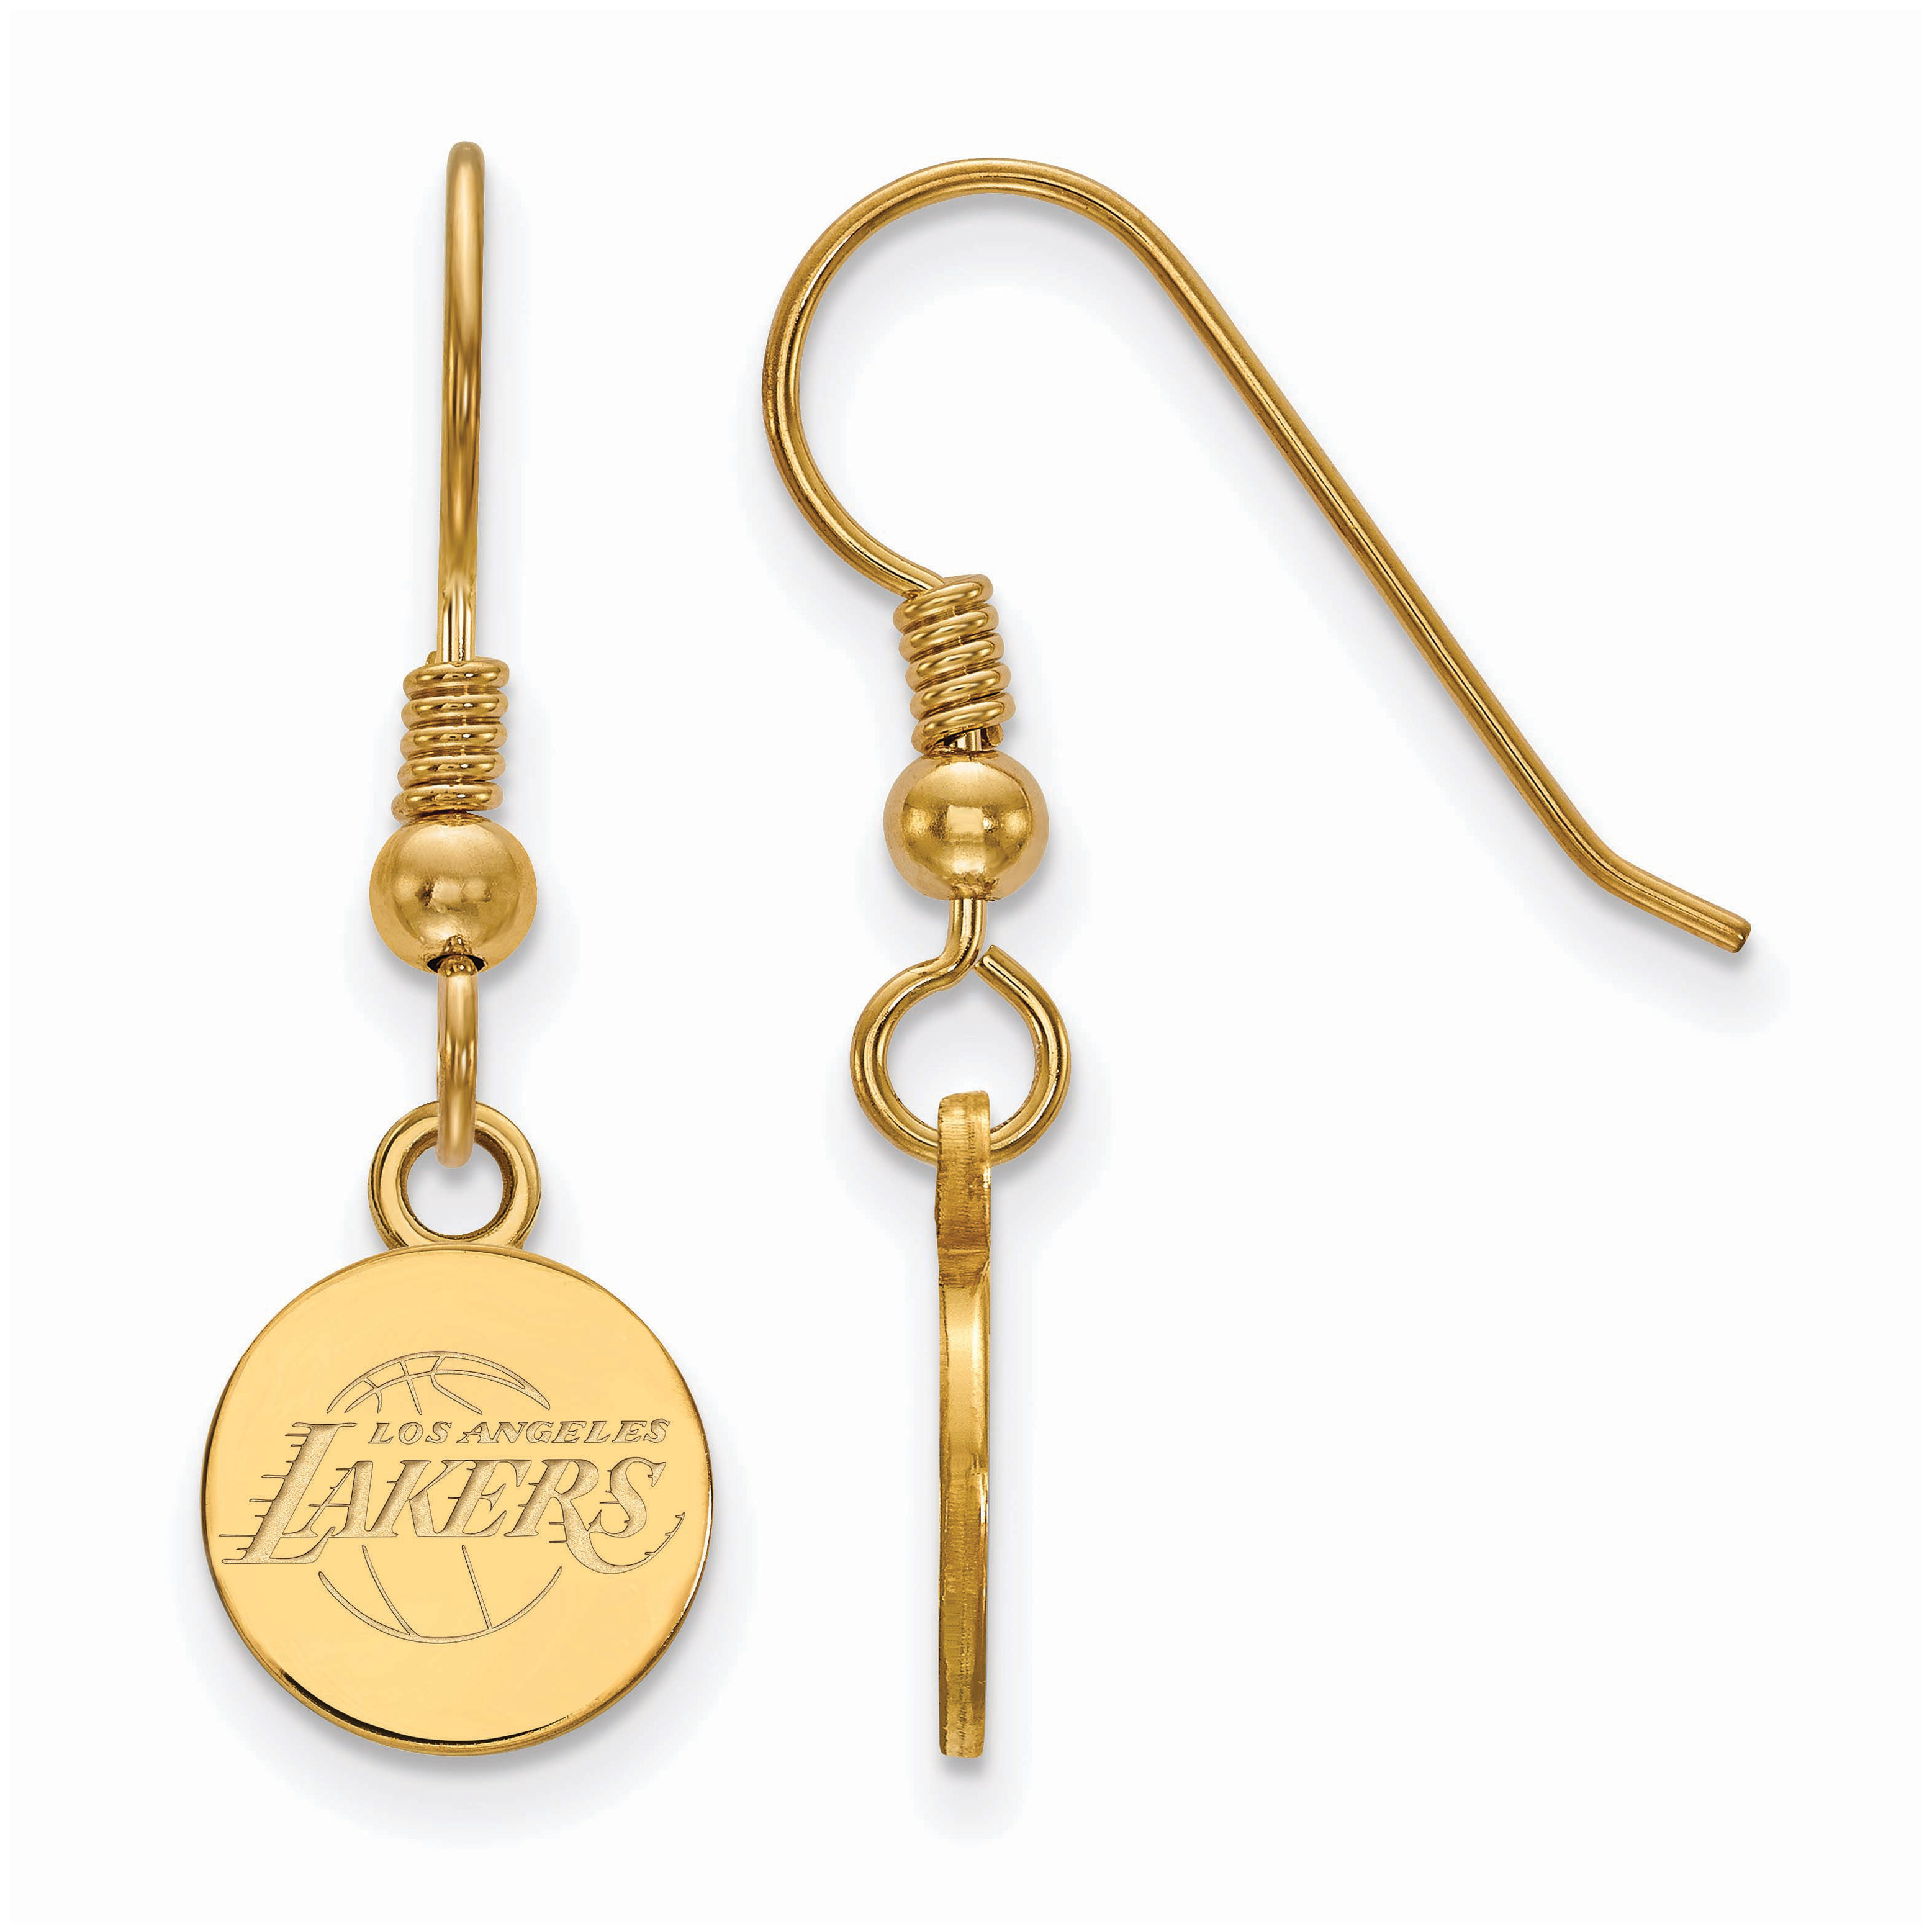 Los Angeles Lakers Women's Gold Plated XS Dangle Earrings - No Size